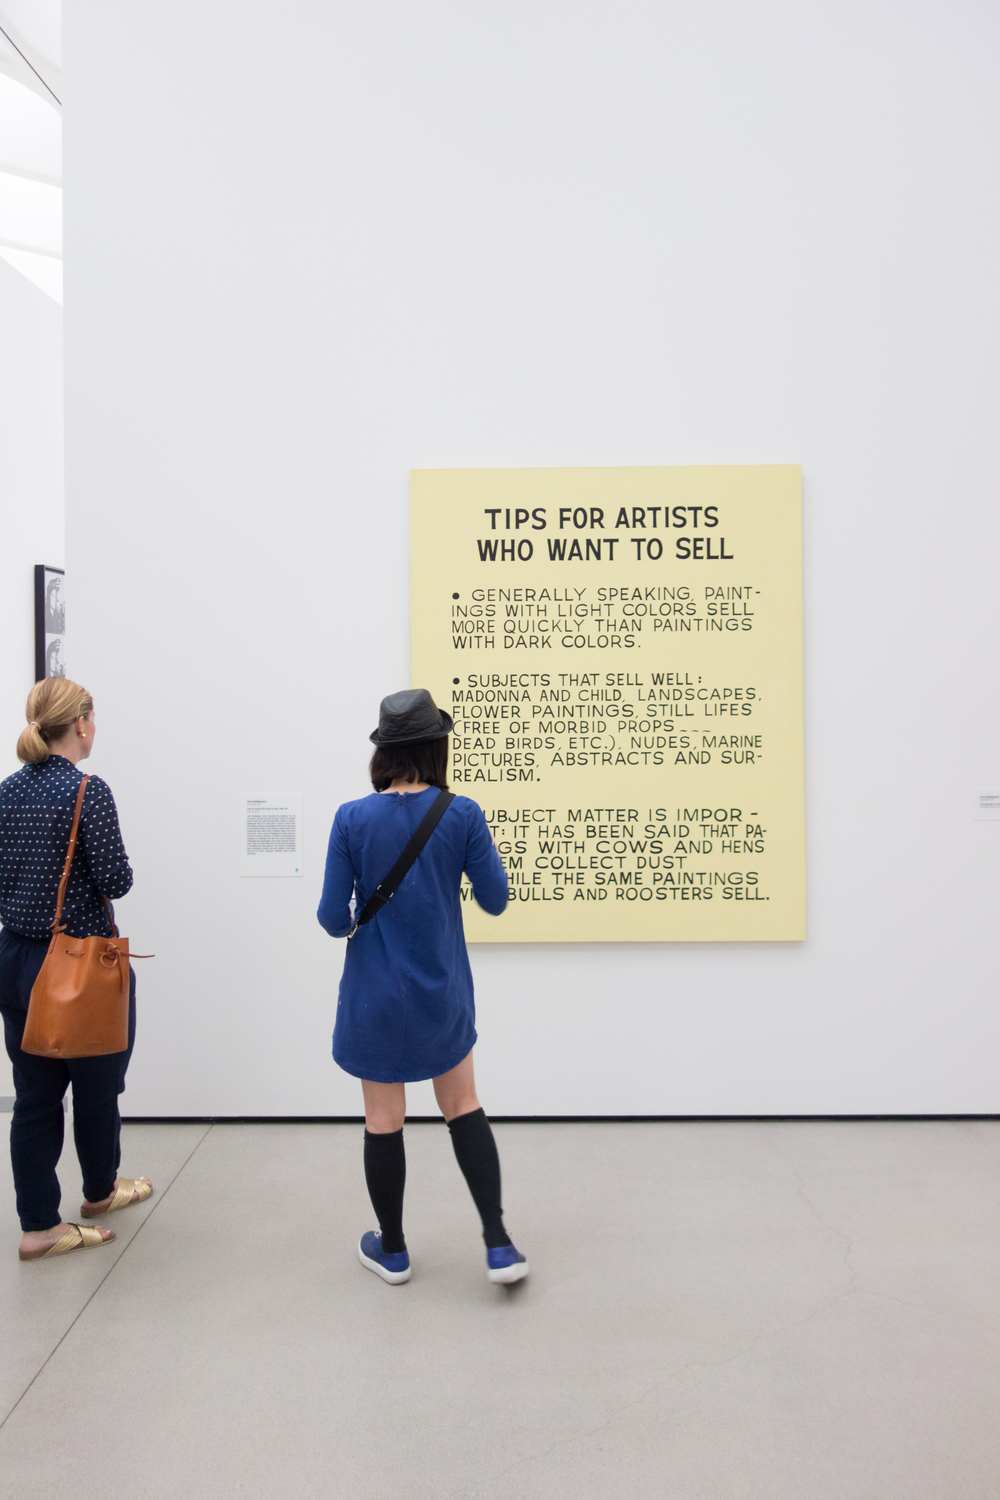 John Baldessari -  Tips for Artists Who Want To Sell, 1966-68  Getting tips to make some money!